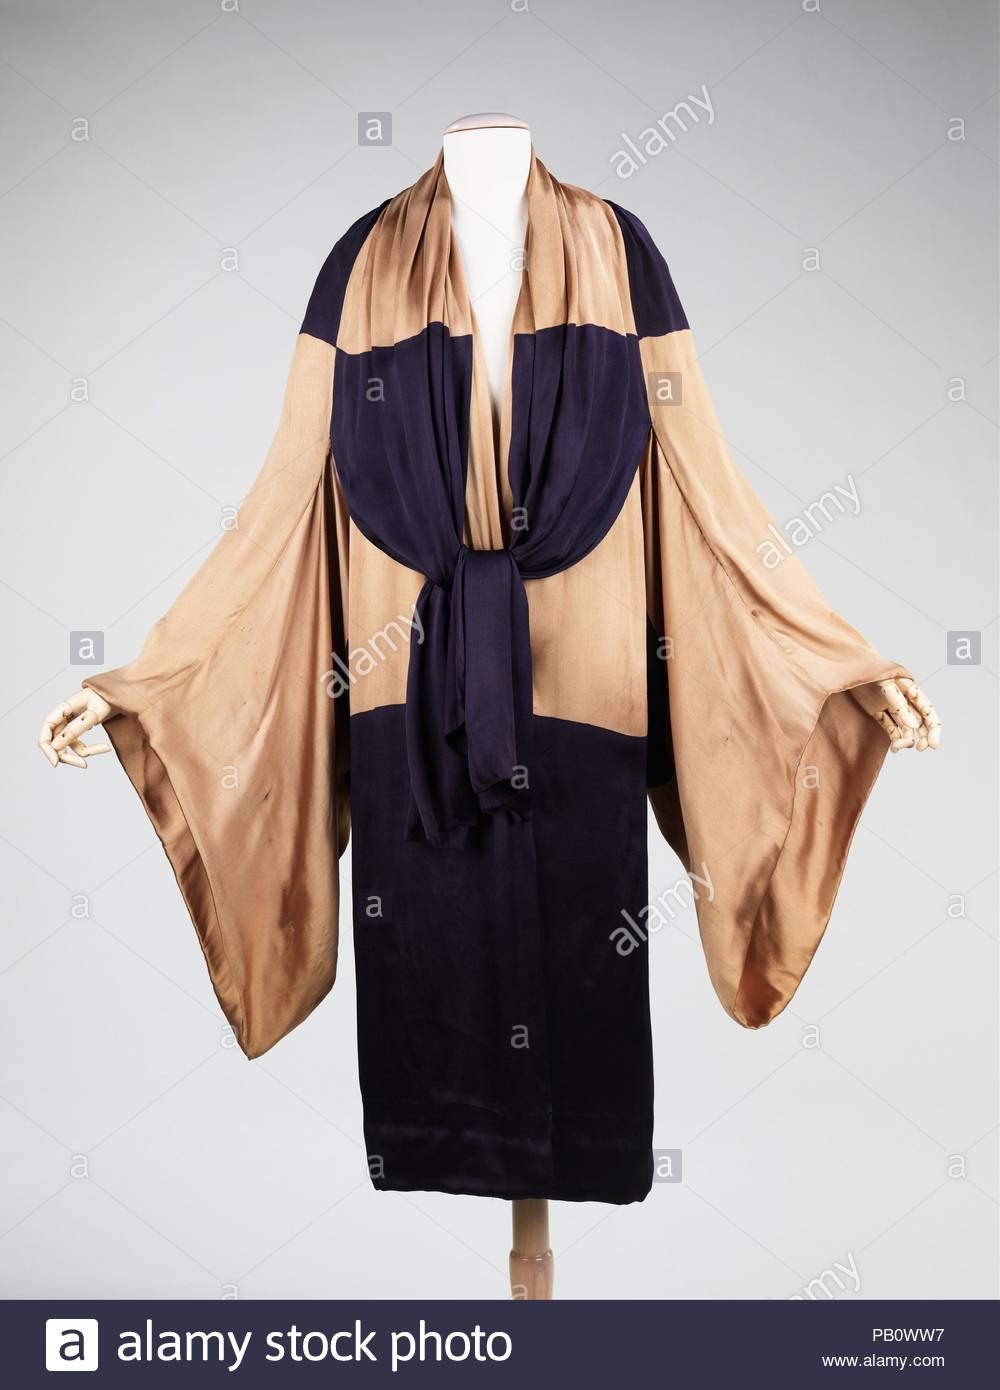 Salon Art Et Deco Paris Evening Coat Culture French Designer Attributed To Paul Poiret